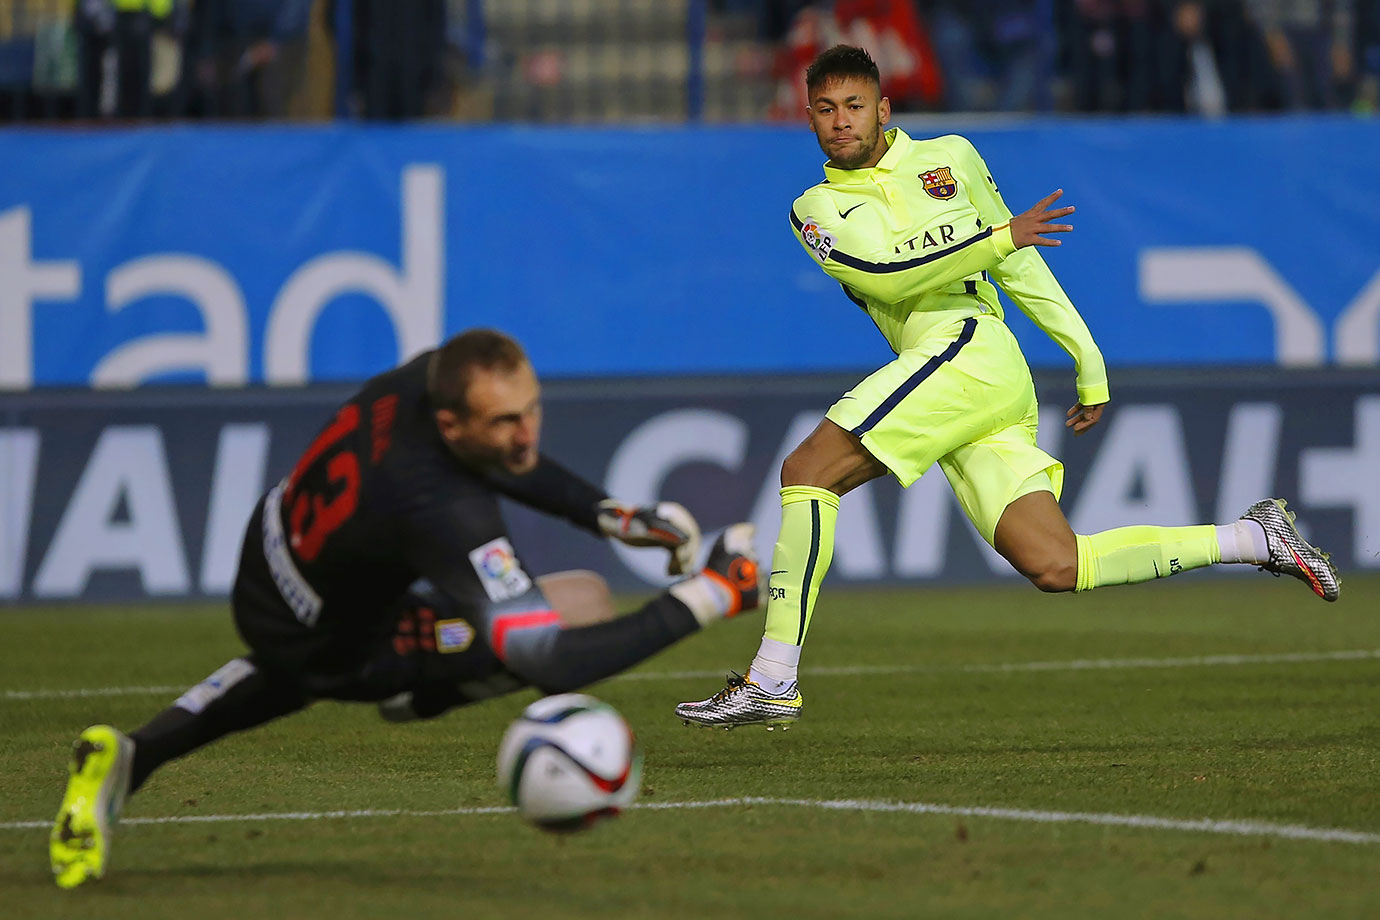 Neymar scores a goal for Barcelona against Atletico de Madrid's Jan Oblak during their Copa del Rey quarterfinal match on Jan. 28, 2015 at the Vicente Calderon Stadium in Madrid, Spain.